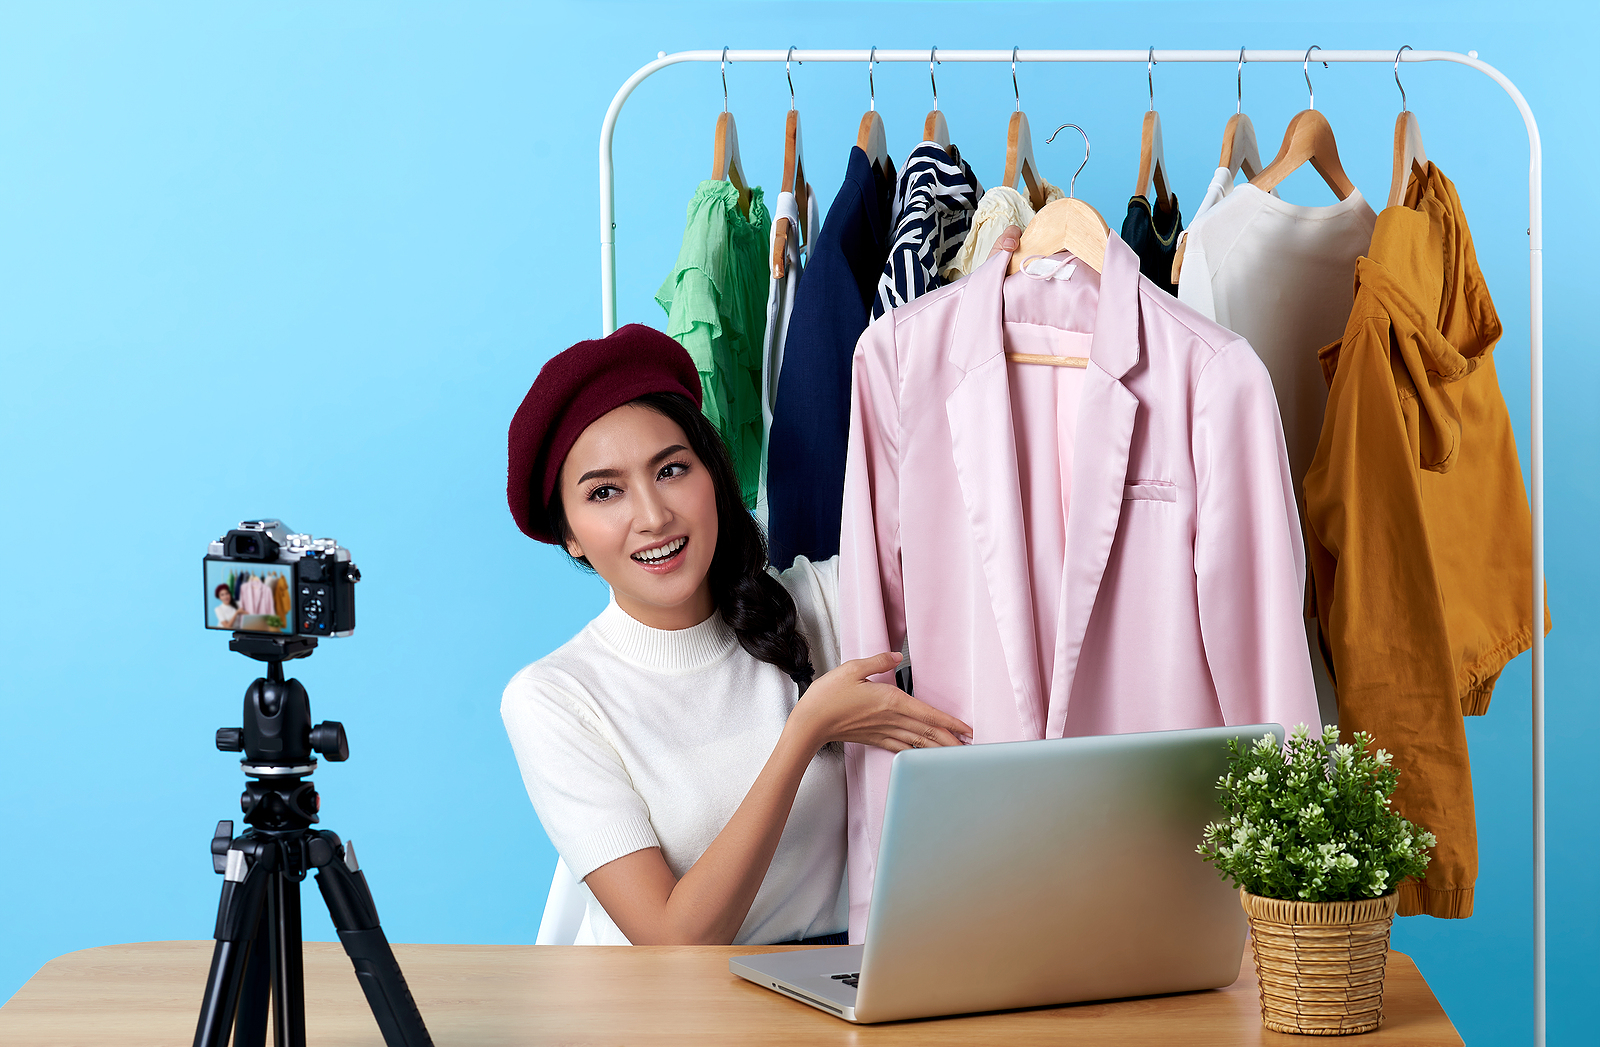 Influencer Marketing in Asia is Making Online Business More Local